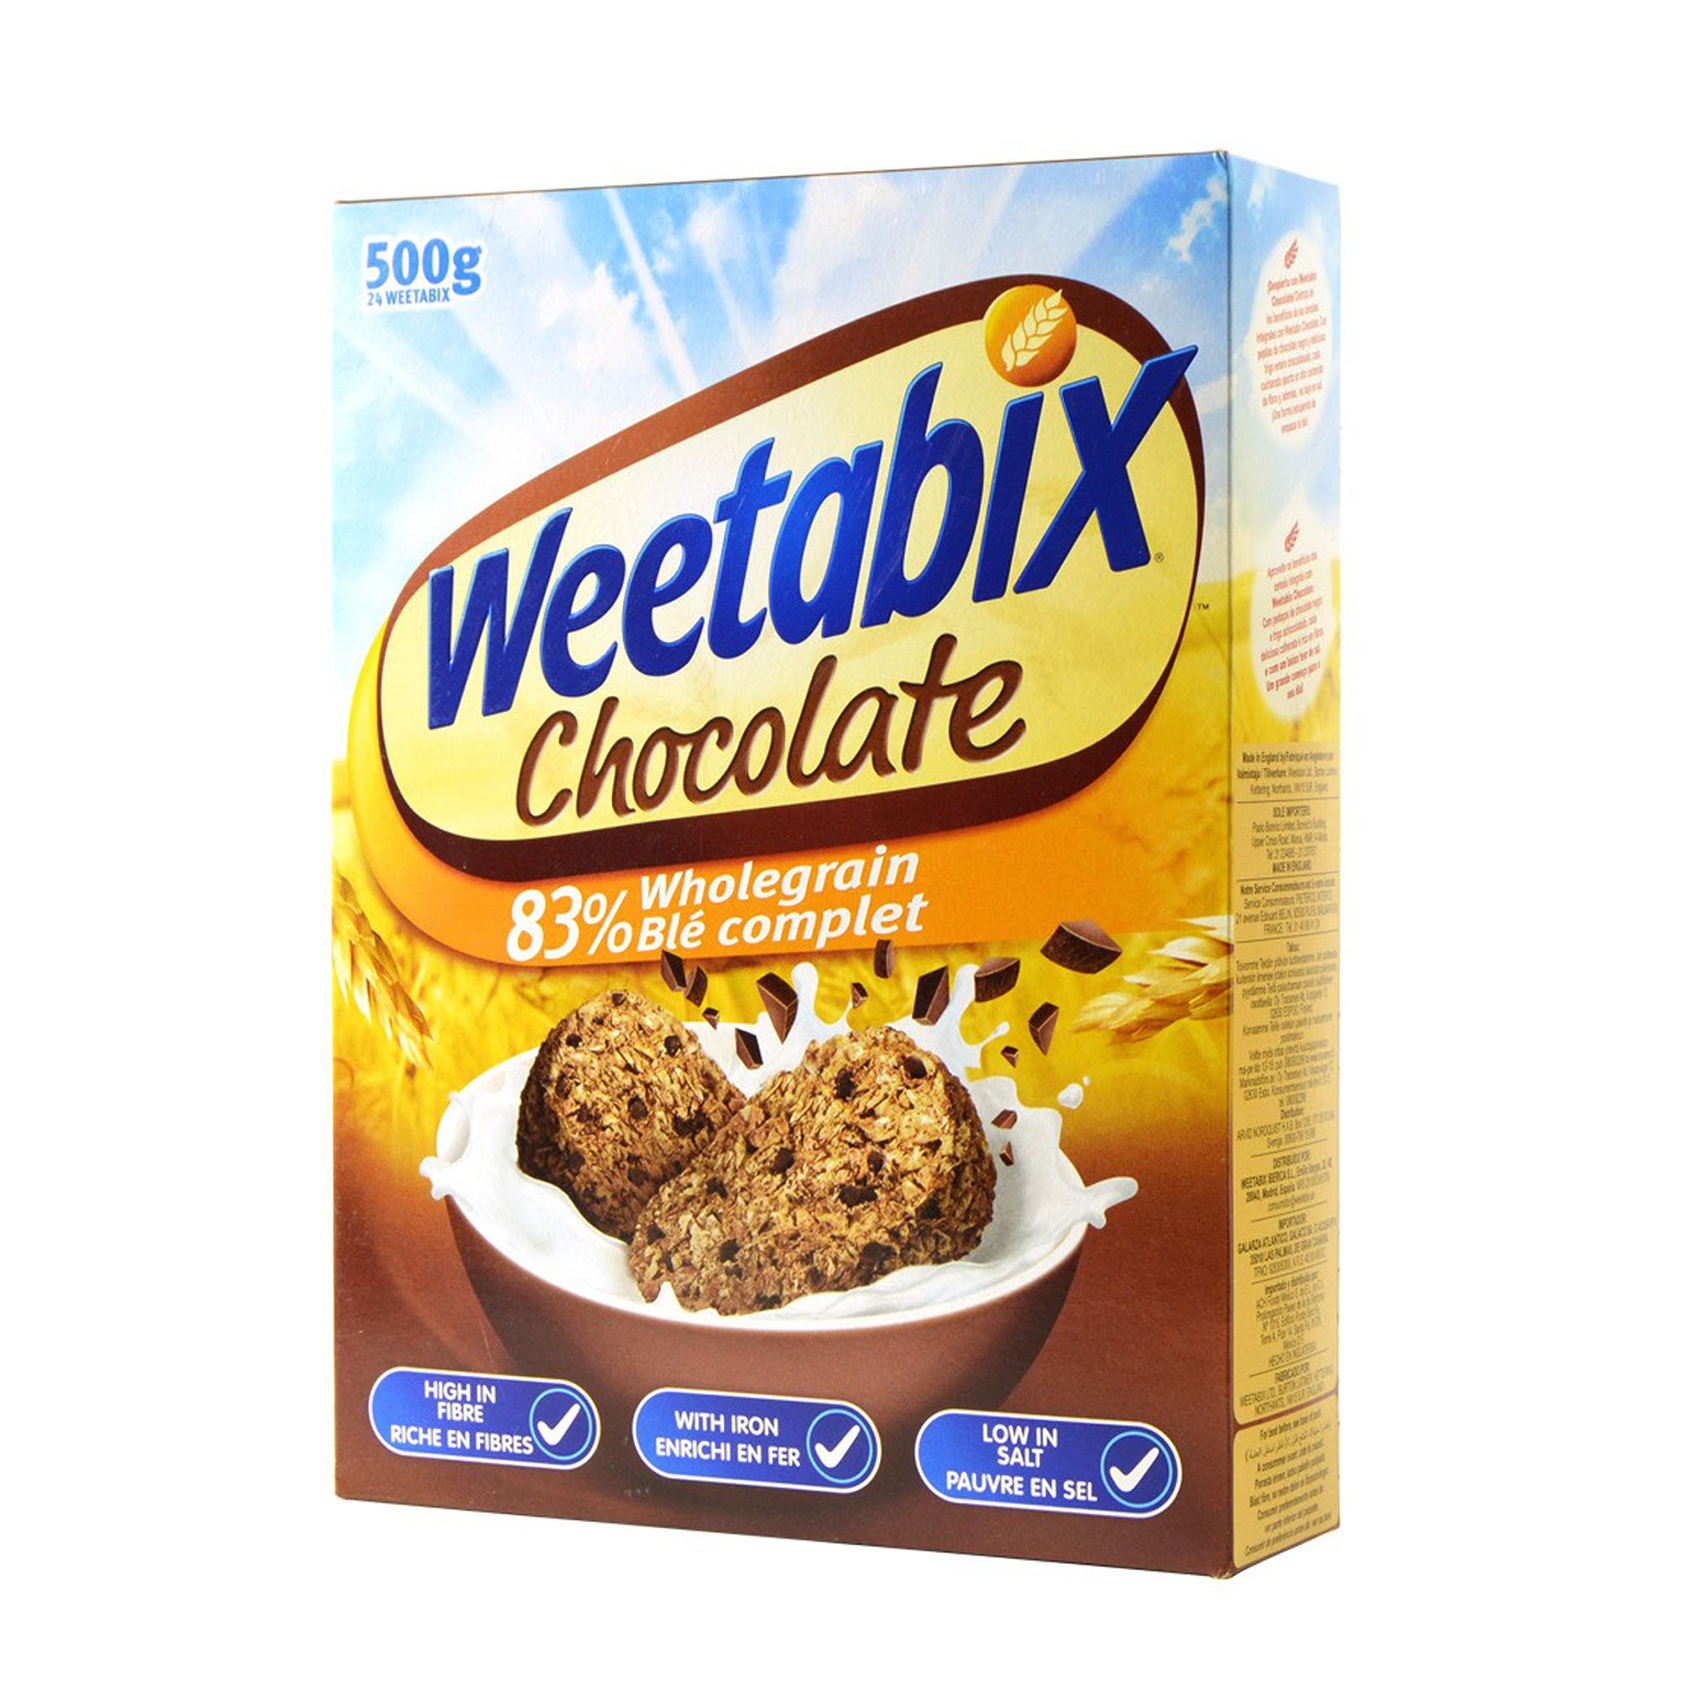 WEETABIX CHOCOLATE CEREAL 500GR